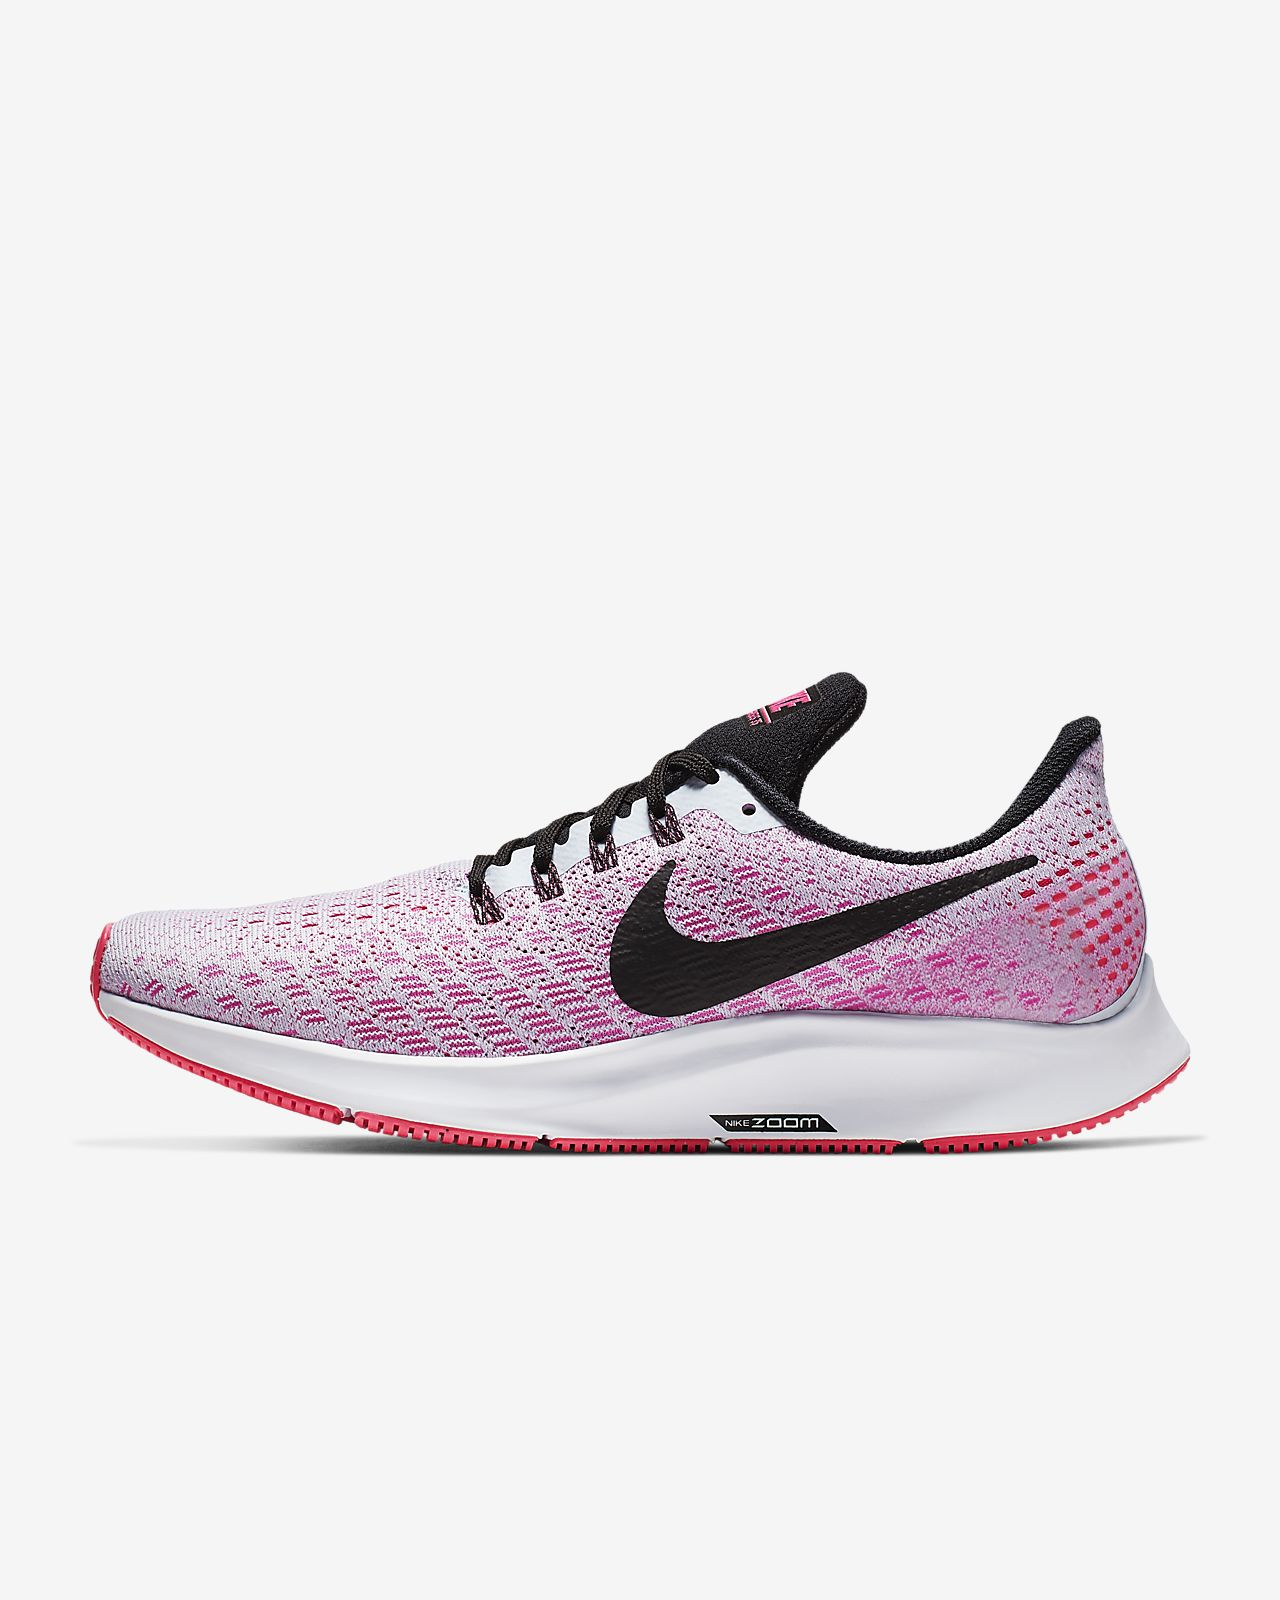 58076be534bc Nike Air Zoom Pegasus 35 Women s Running Shoe. Nike.com ZA